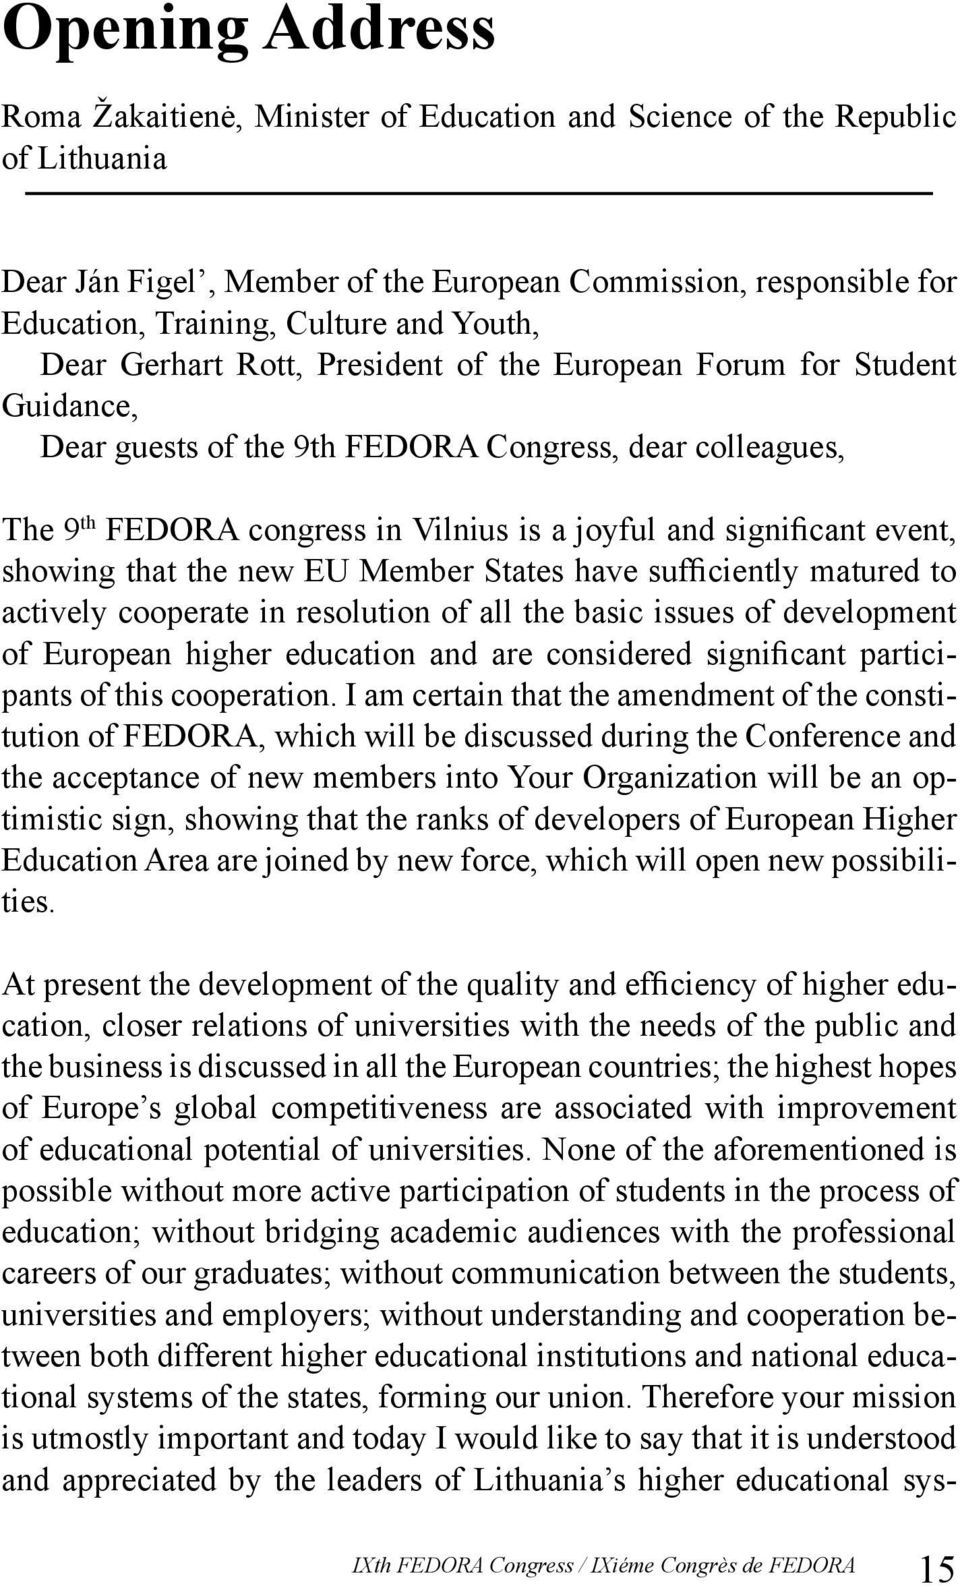 significant event, showing that the new EU Member States have sufficiently matured to actively cooperate in resolution of all the basic issues of development of European higher education and are